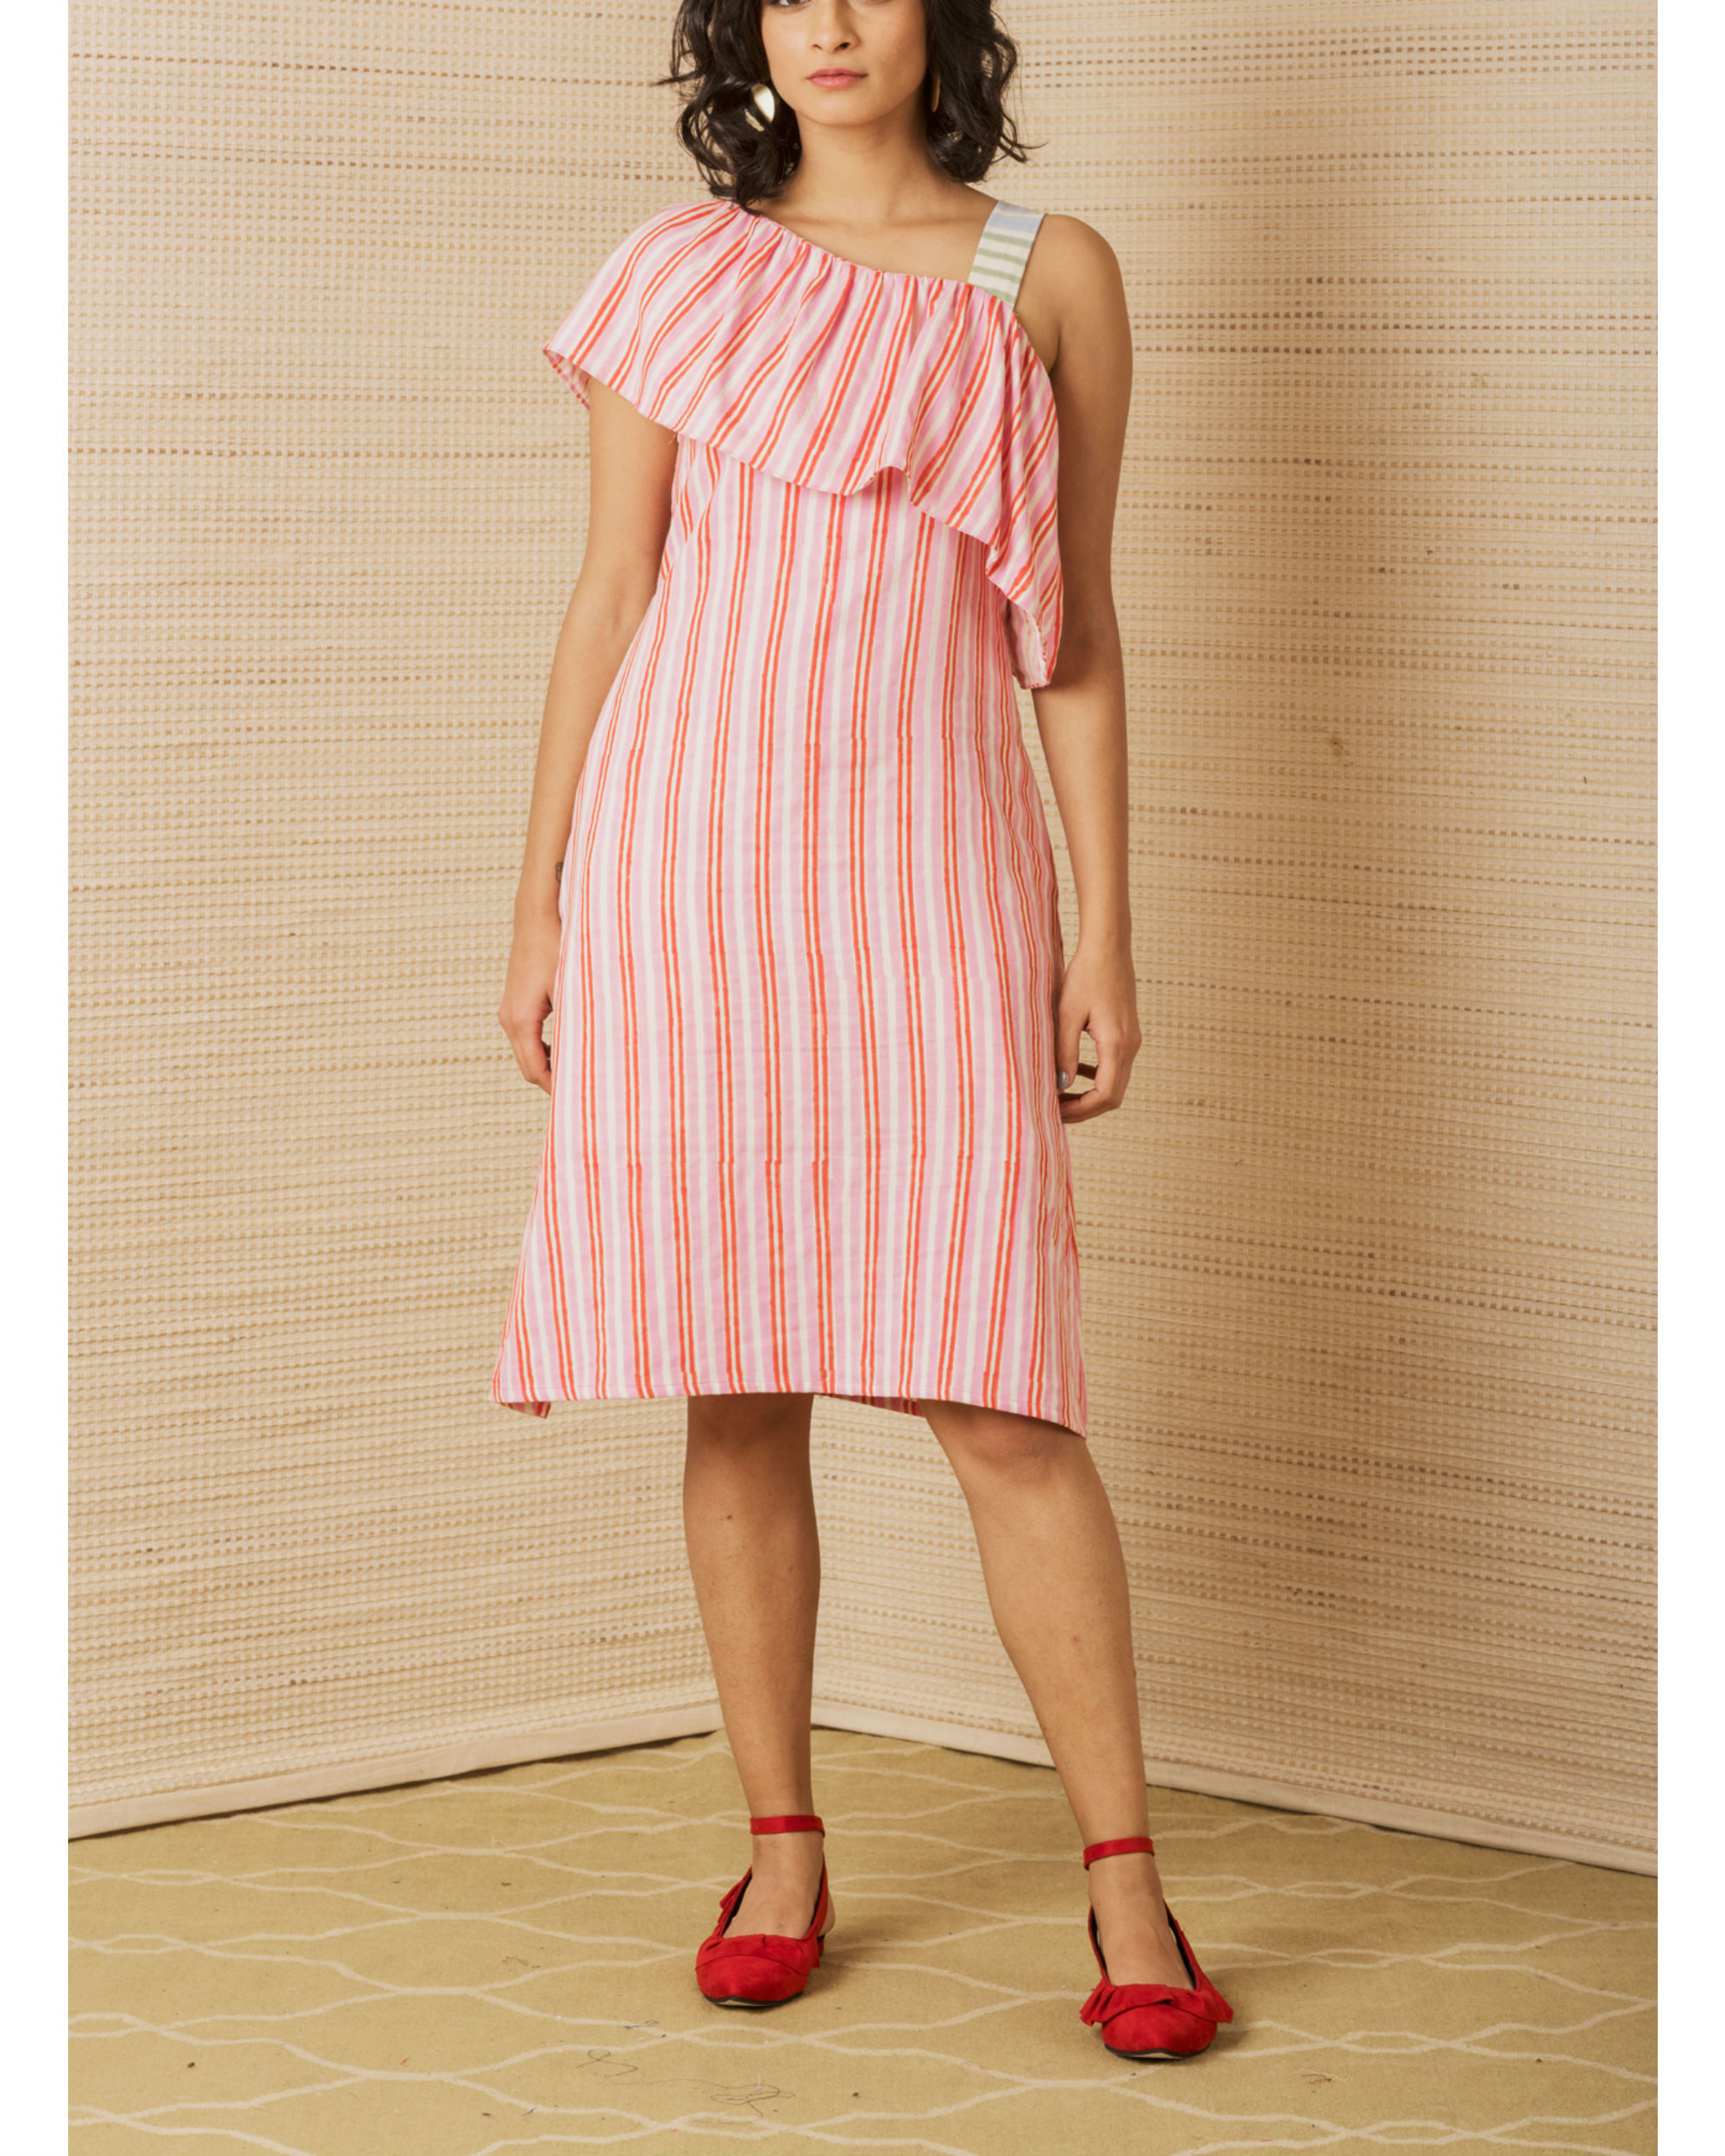 Striped One Shoulder Dress